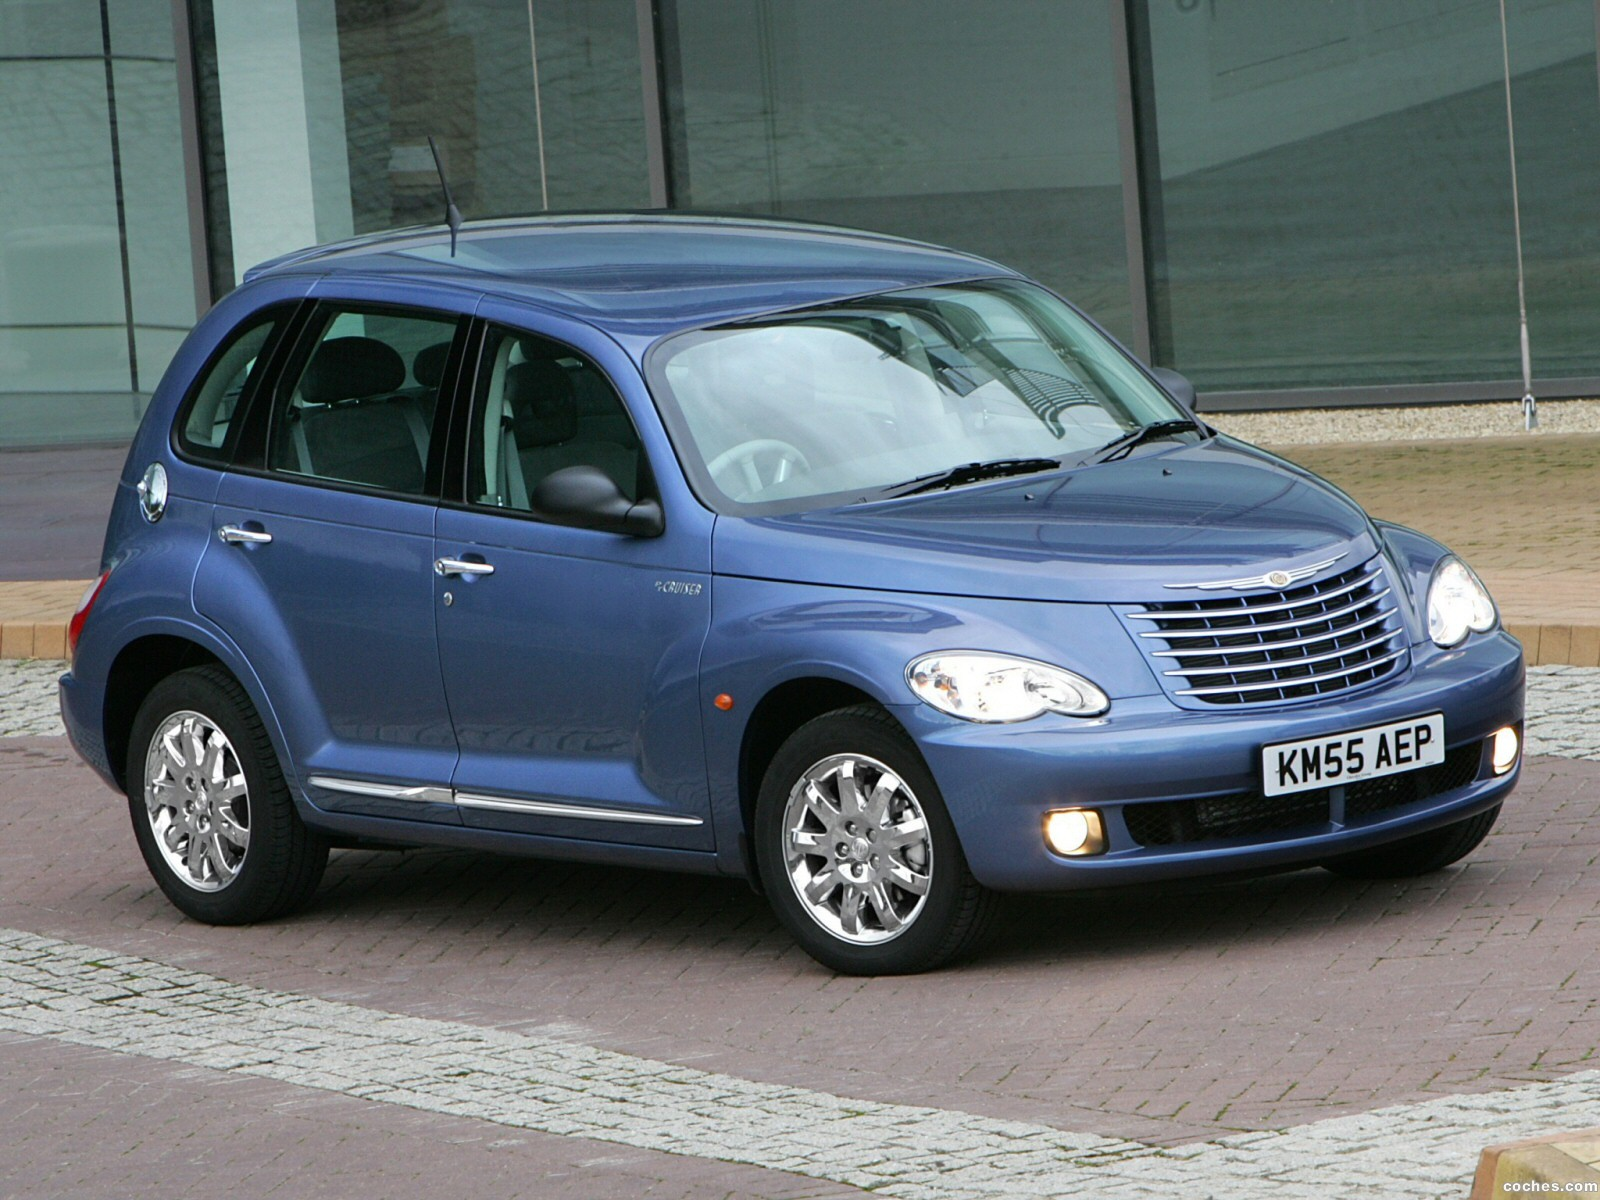 fotos de chrysler pt cruiser facelift 2006 foto 6. Black Bedroom Furniture Sets. Home Design Ideas